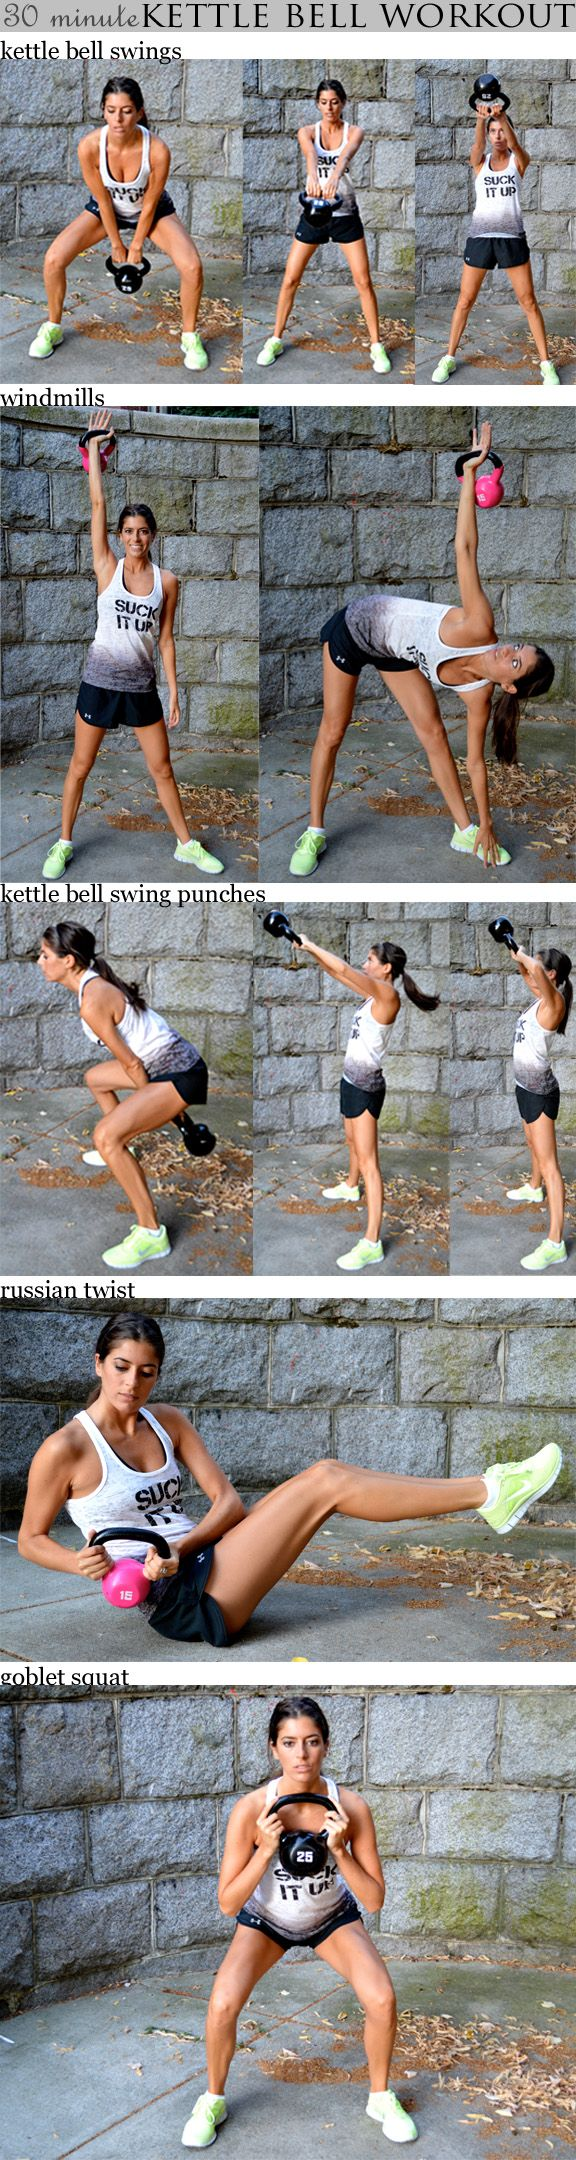 30 Minute Kettle Bell Workout | Set your interval timer for 30 rounds of 40 seconds of work and 20 seconds of rest. You'll go through the following sequence five times: (1) Kettlebell Swings (2) Windmills Left (3) Windmills Right (4) Kettlebell Swing Punches (5) Russian Twists (6) Goblet Squats.